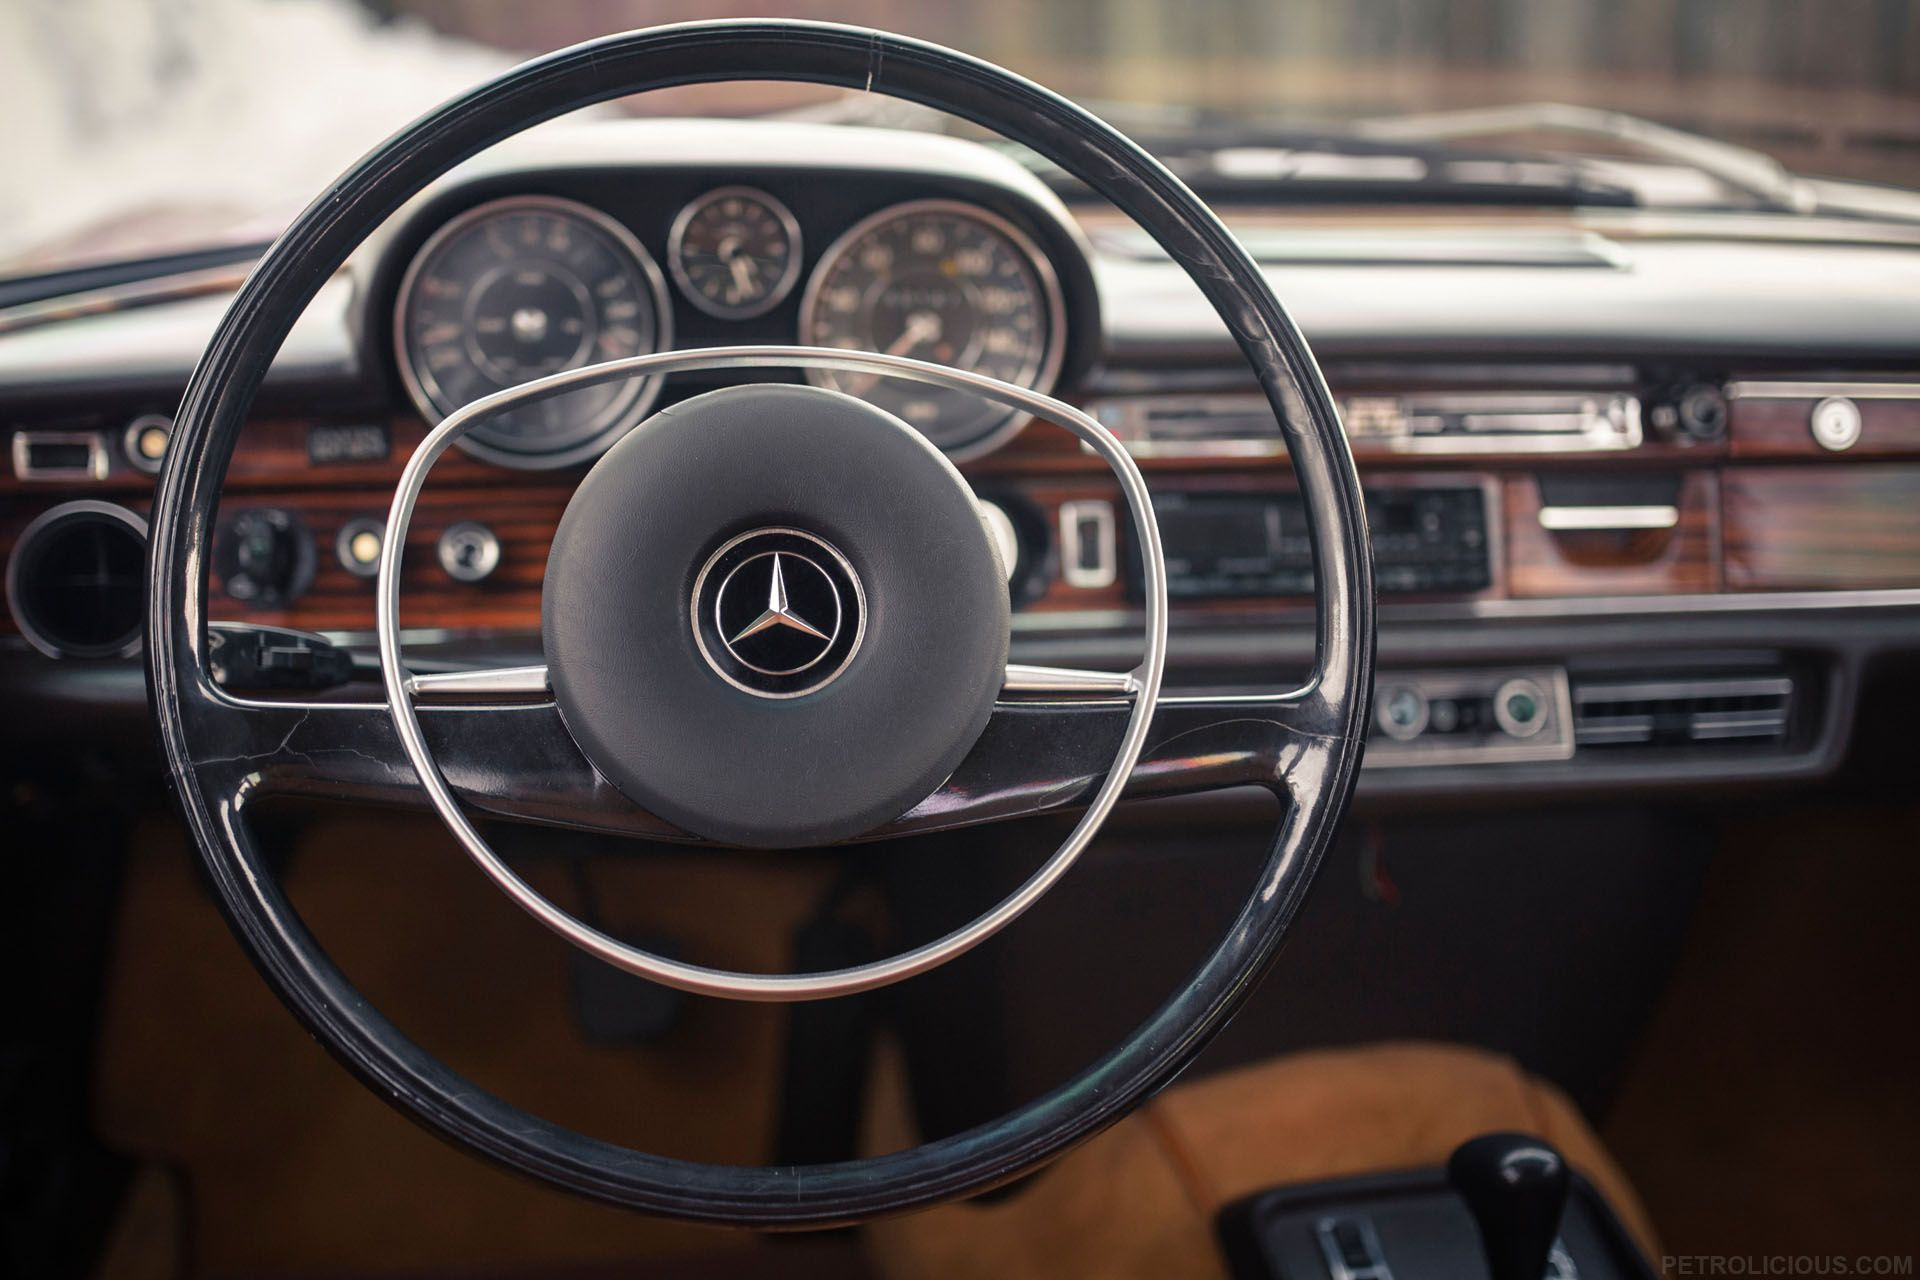 This Mercedes Benz Mechanic Preserves History With Painstaking